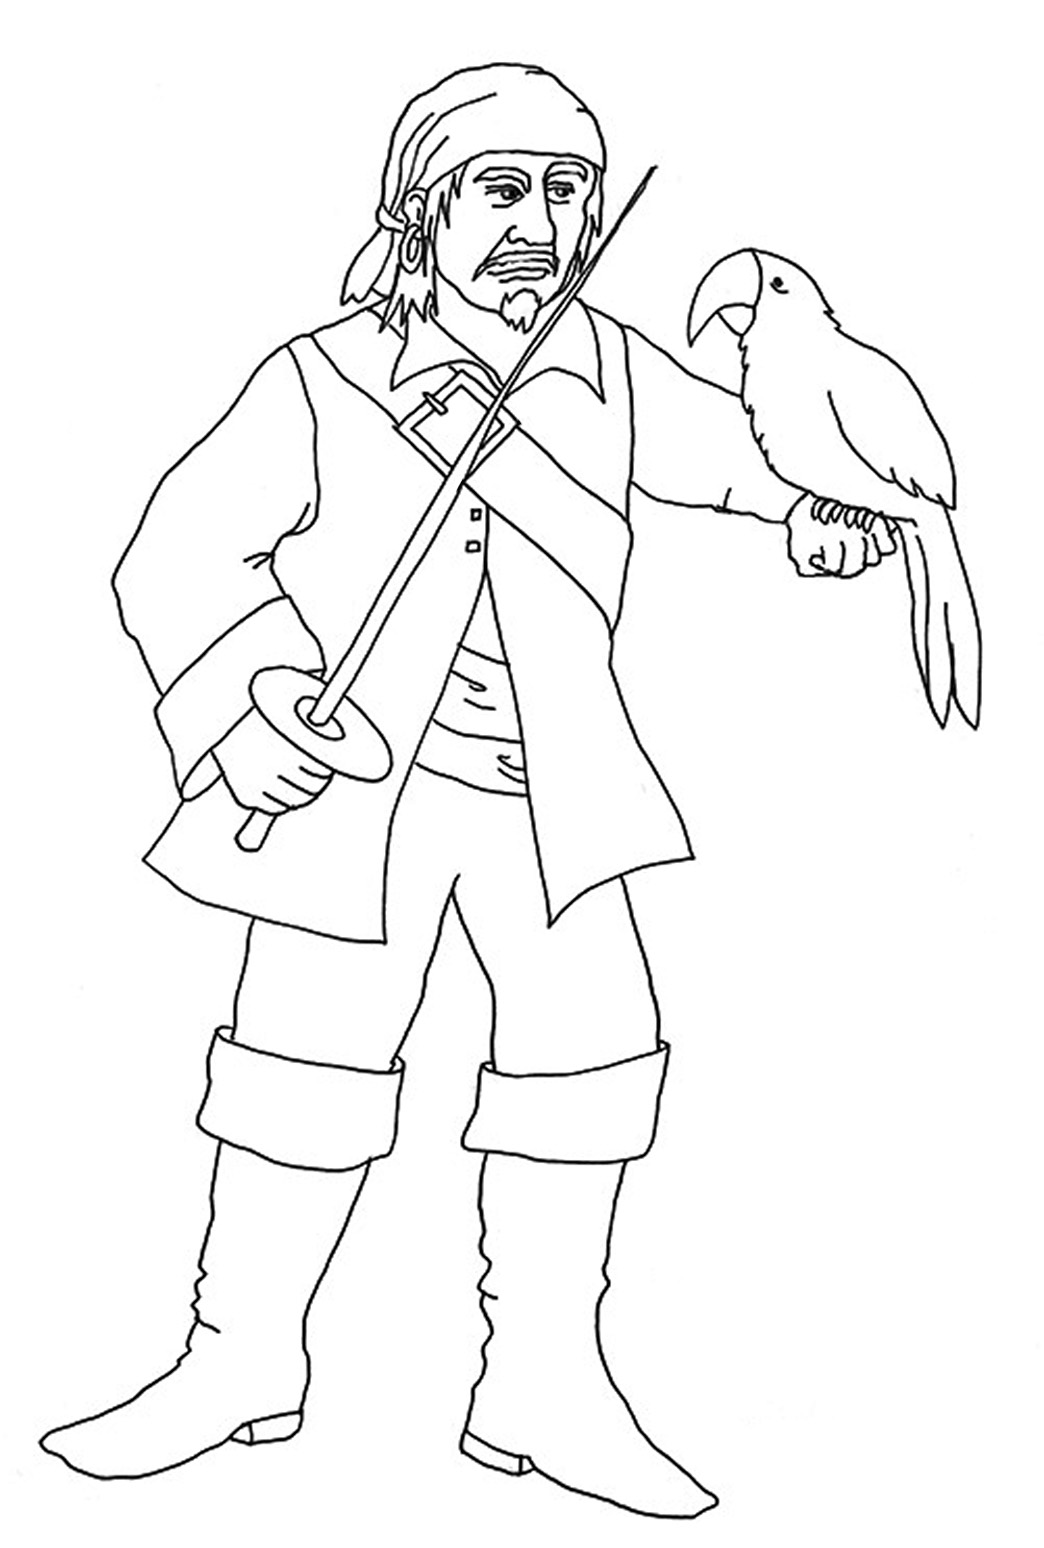 pirate parrot coloring pages pirate coloring pages parrot coloring pirate pages